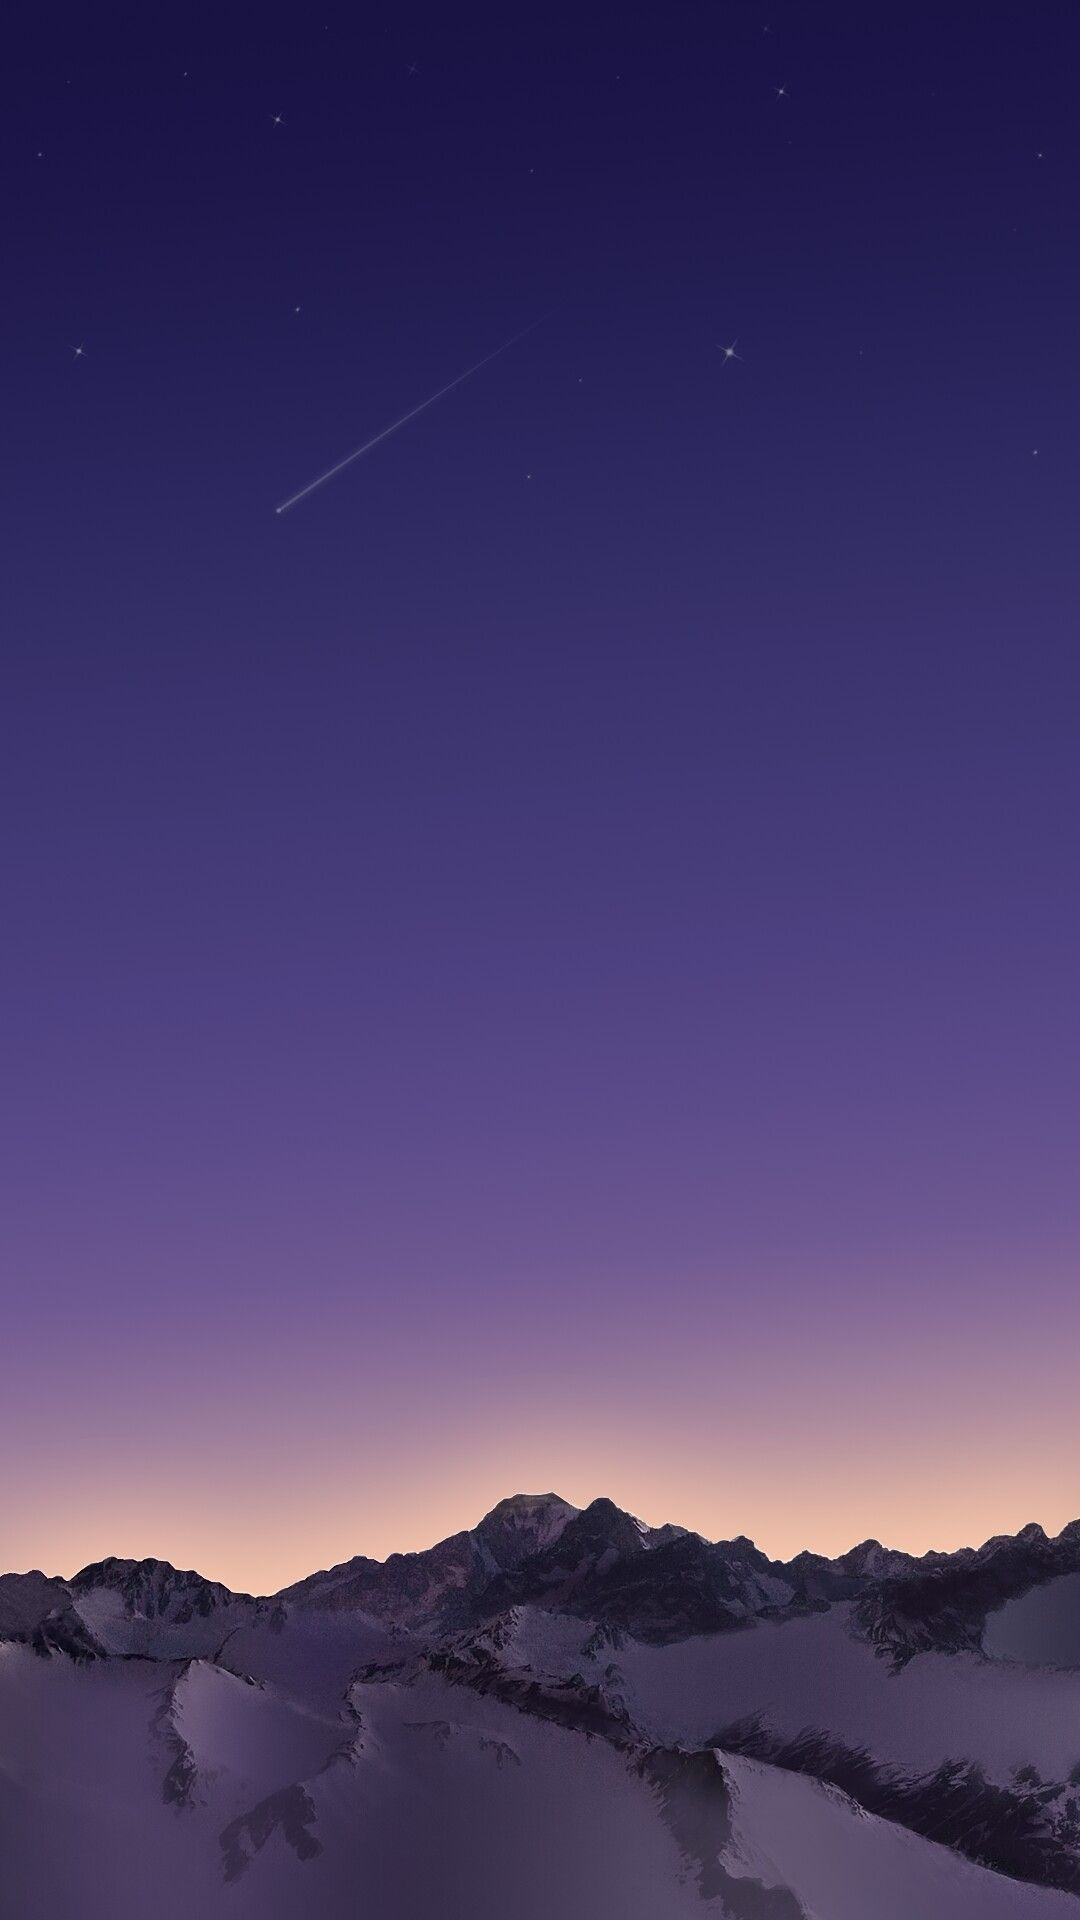 Get New Wallpaper for iPhone 6 / 6 Plus 2019